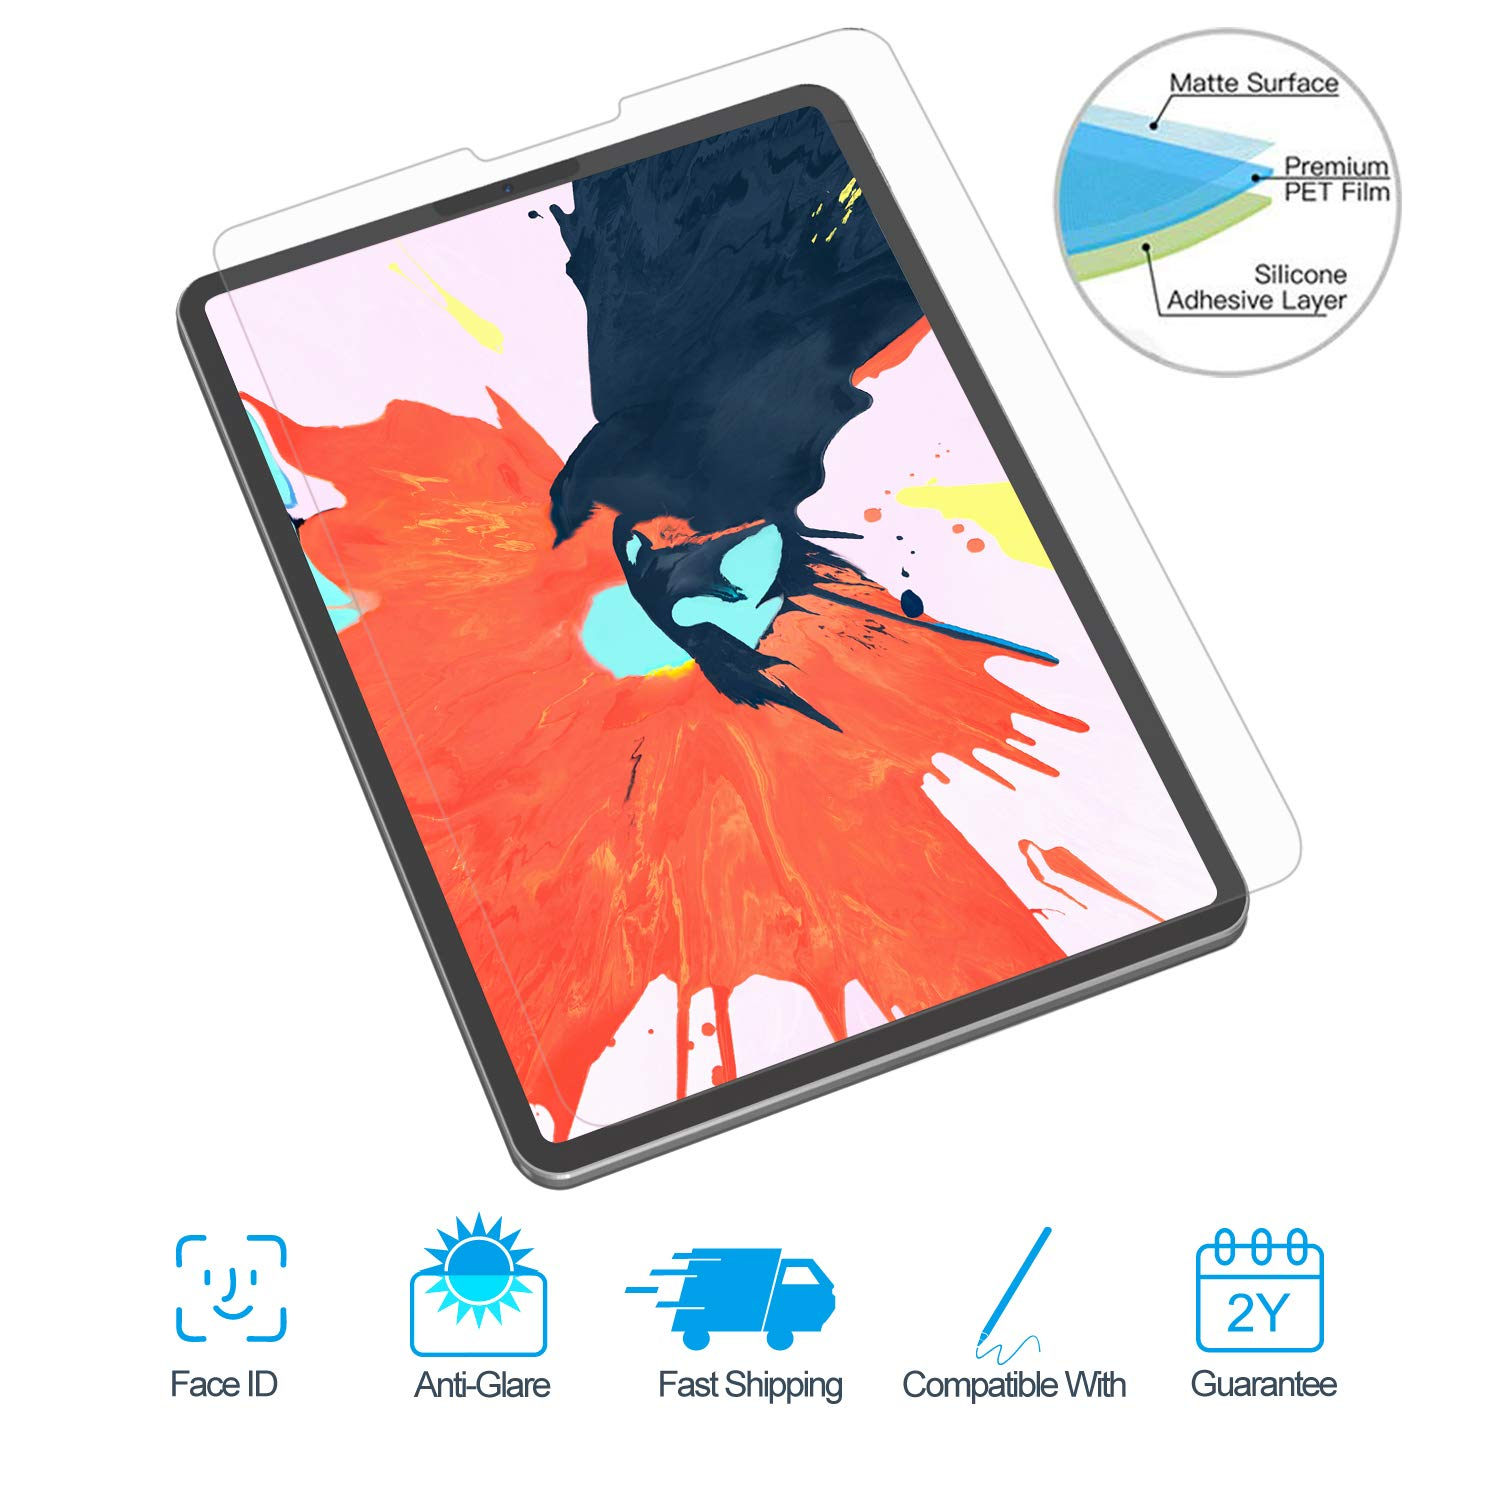 Soke iPad Pro 12.9 Screen Protector Paper-Like,[Anti Glare][Scratch Resistant][Paperlike Film Writing][Apple Pencil Compatible] for Apple iPad Pro 3rd Generation 12.9 Inch 2018